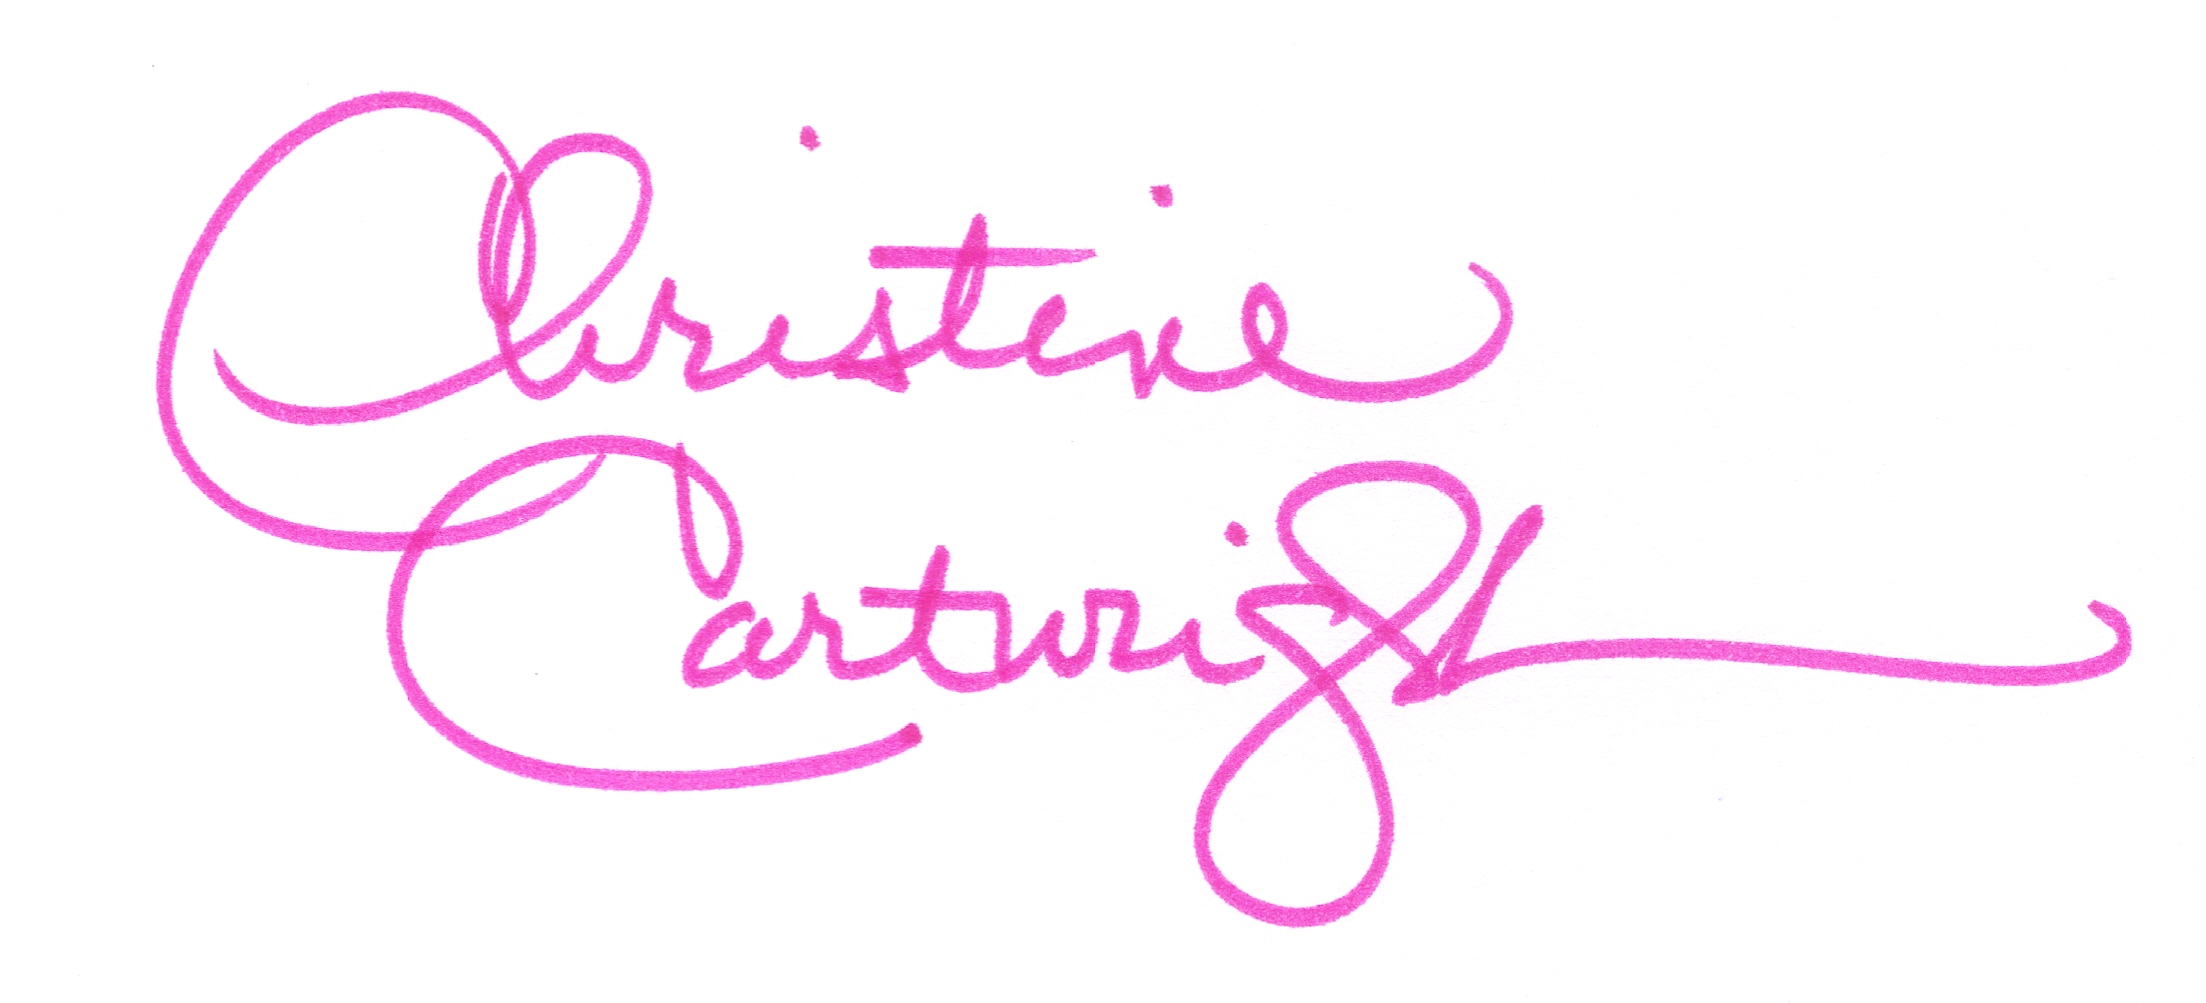 Christine Cartwright's Signature